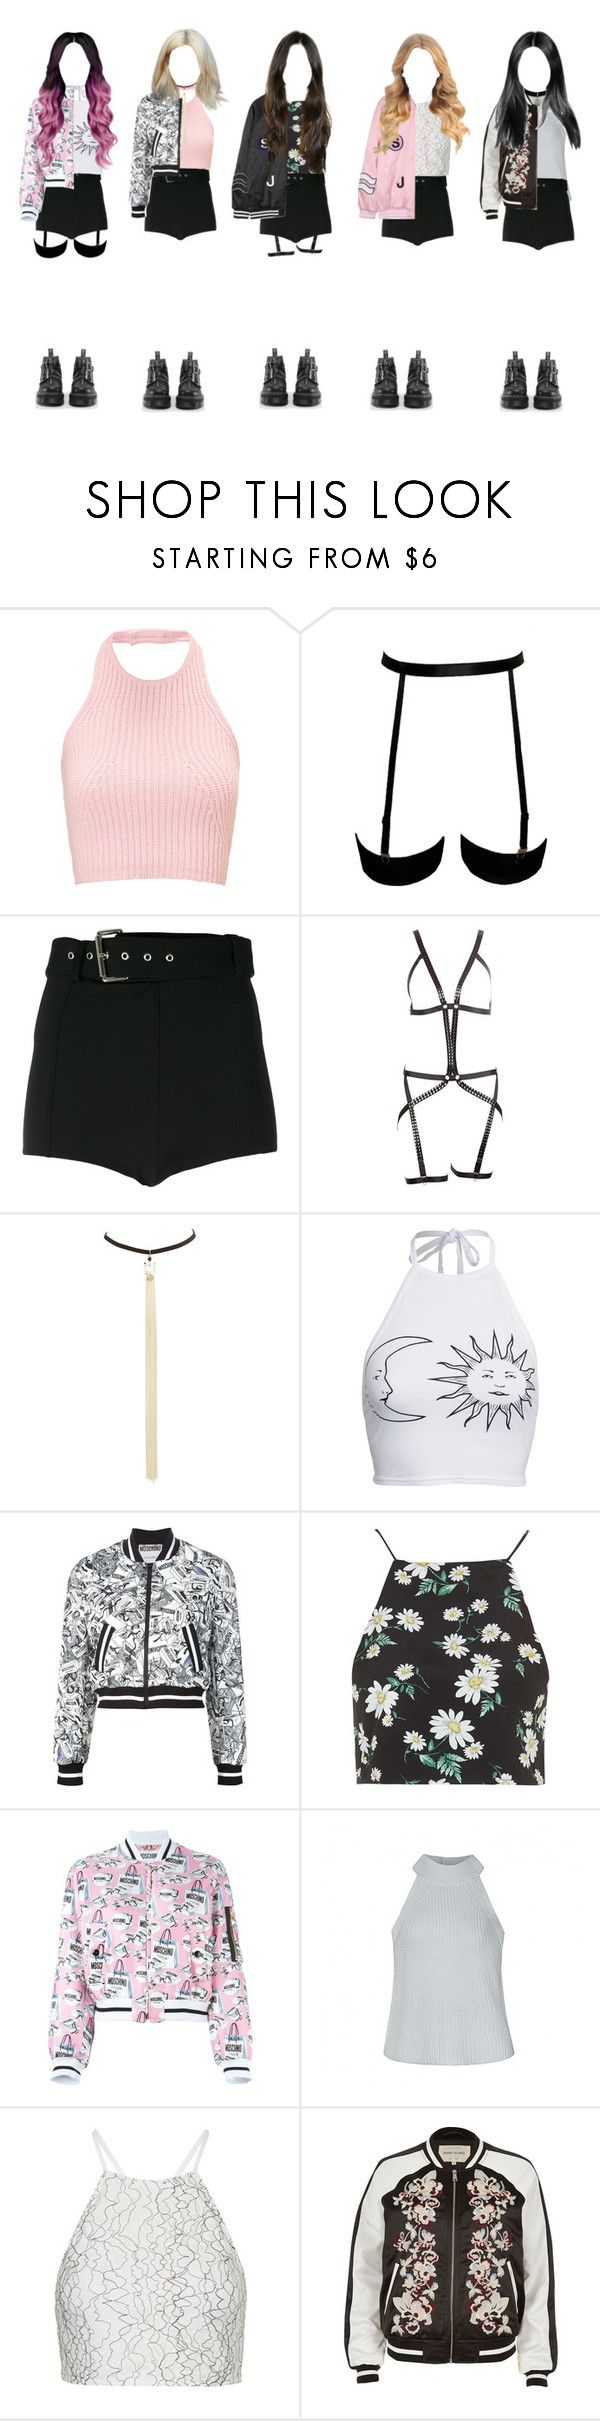 """""""Blackpink"""" by moonbowlmeryemila ❤ liked on Polyvore featuring Versus, I.D. SARRIERI, Charlotte Russe, Boohoo, Moschino, Topshop, Ally Fashion, River Island, SJYP and Dr. Martens"""